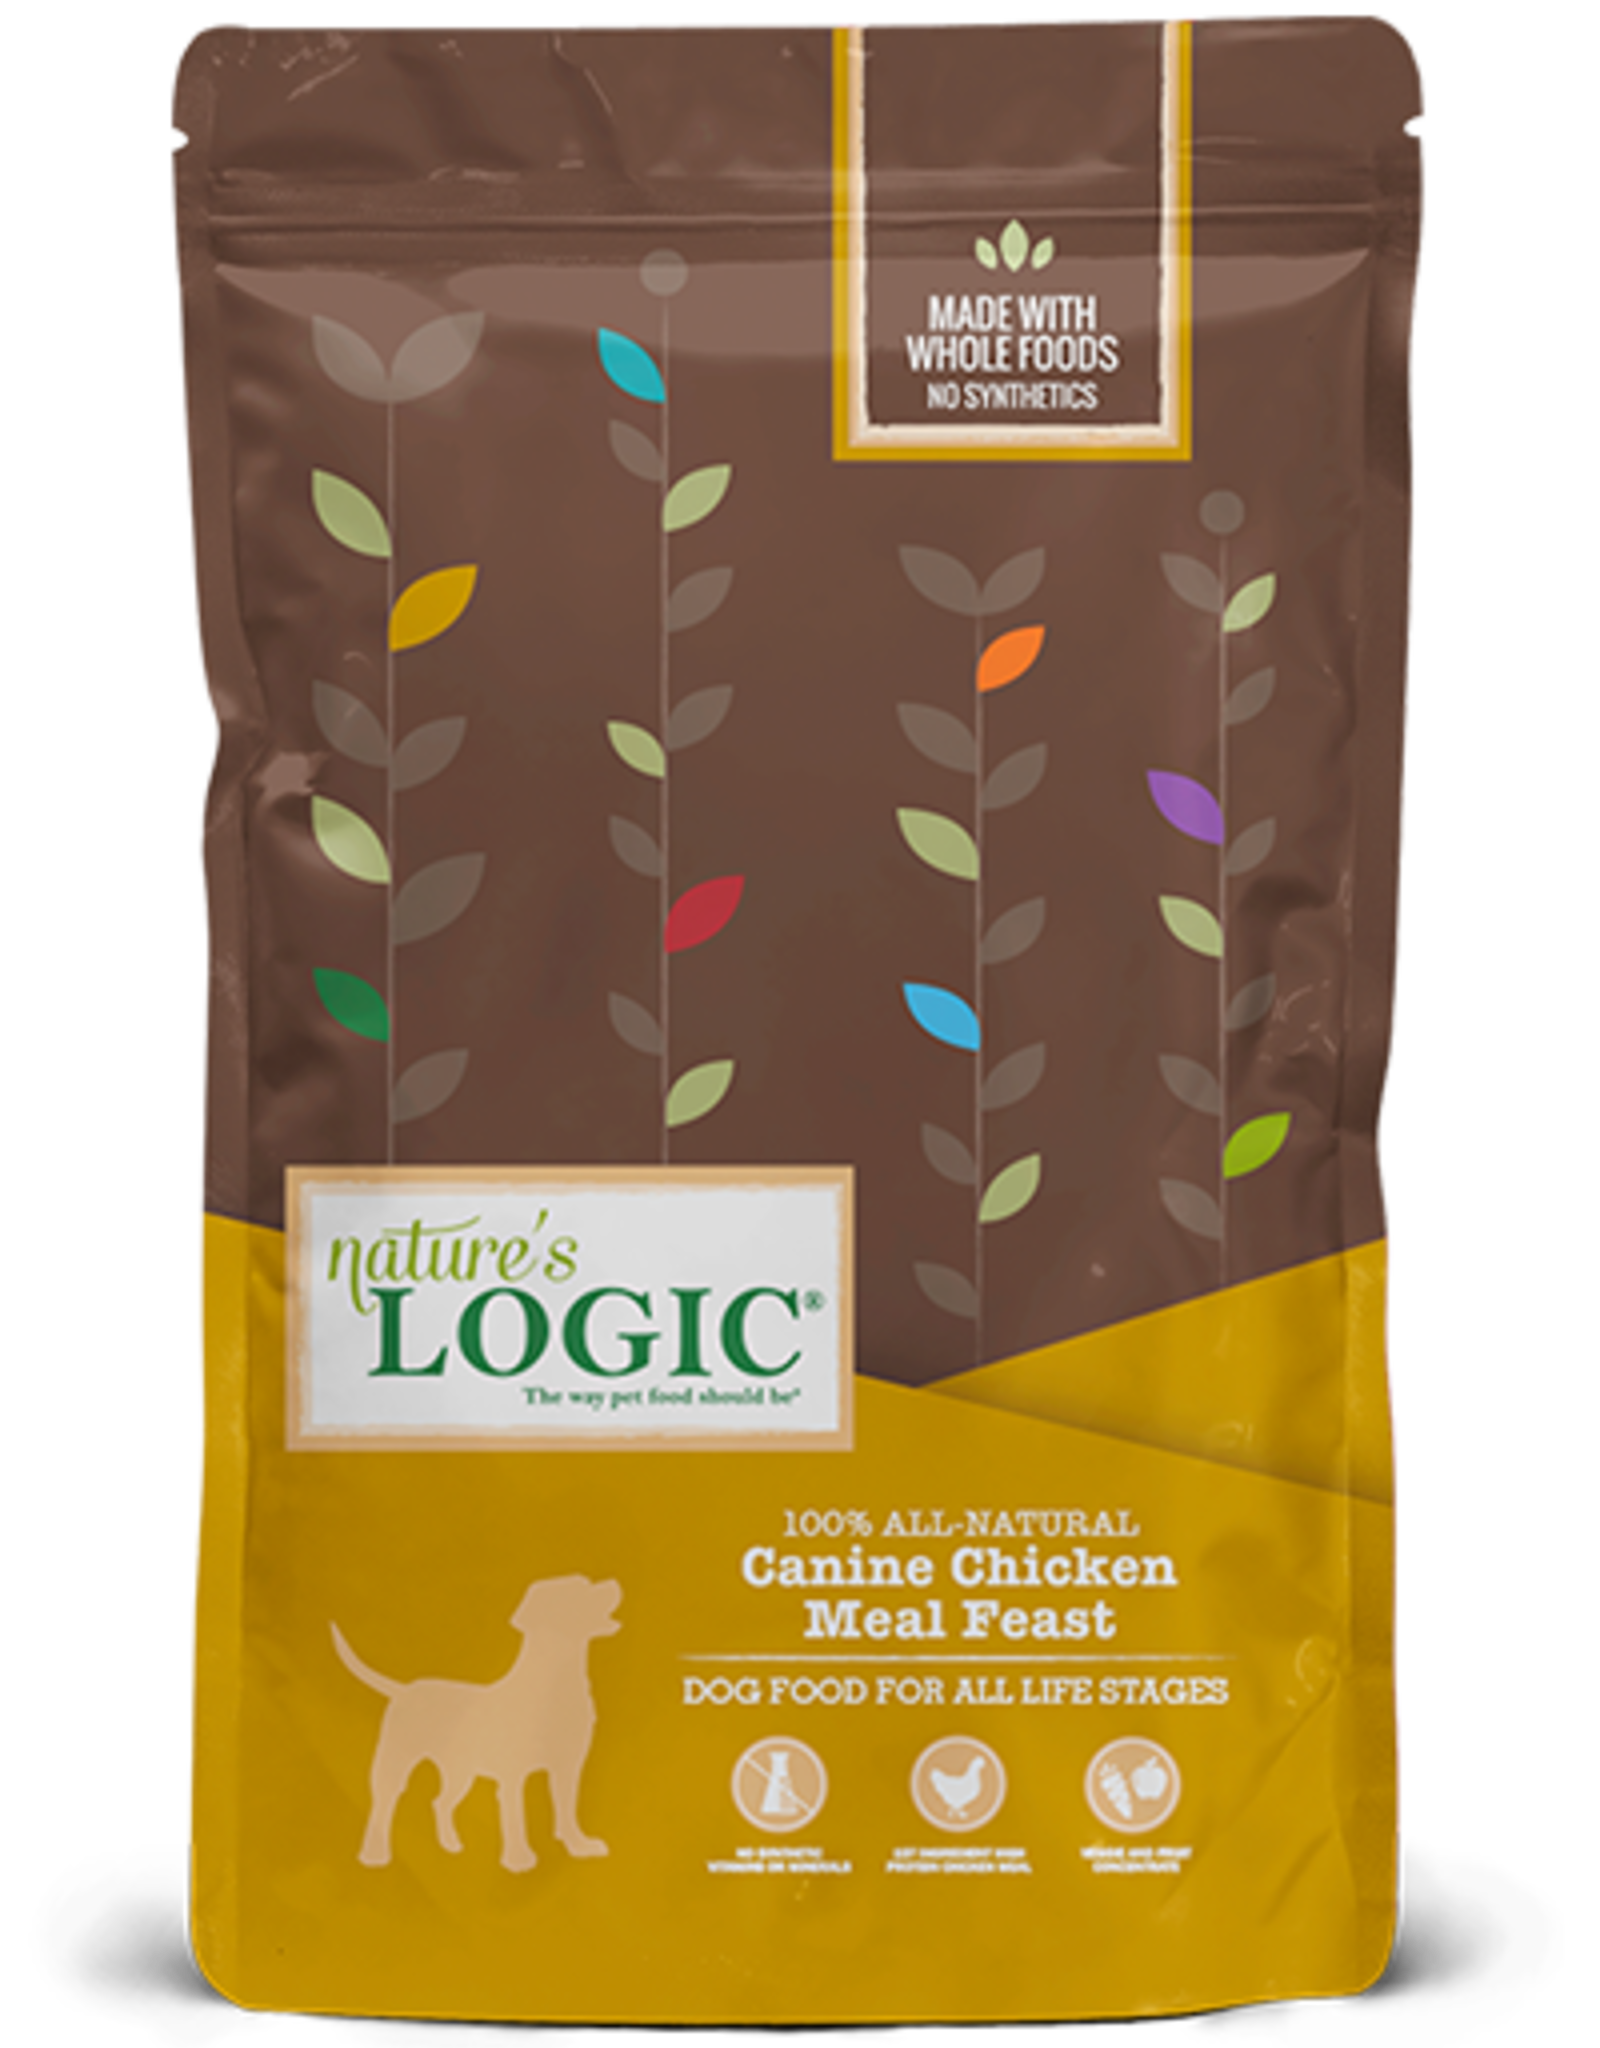 Natures Logic Canine Chicken Feast - Whole Grain 25lb